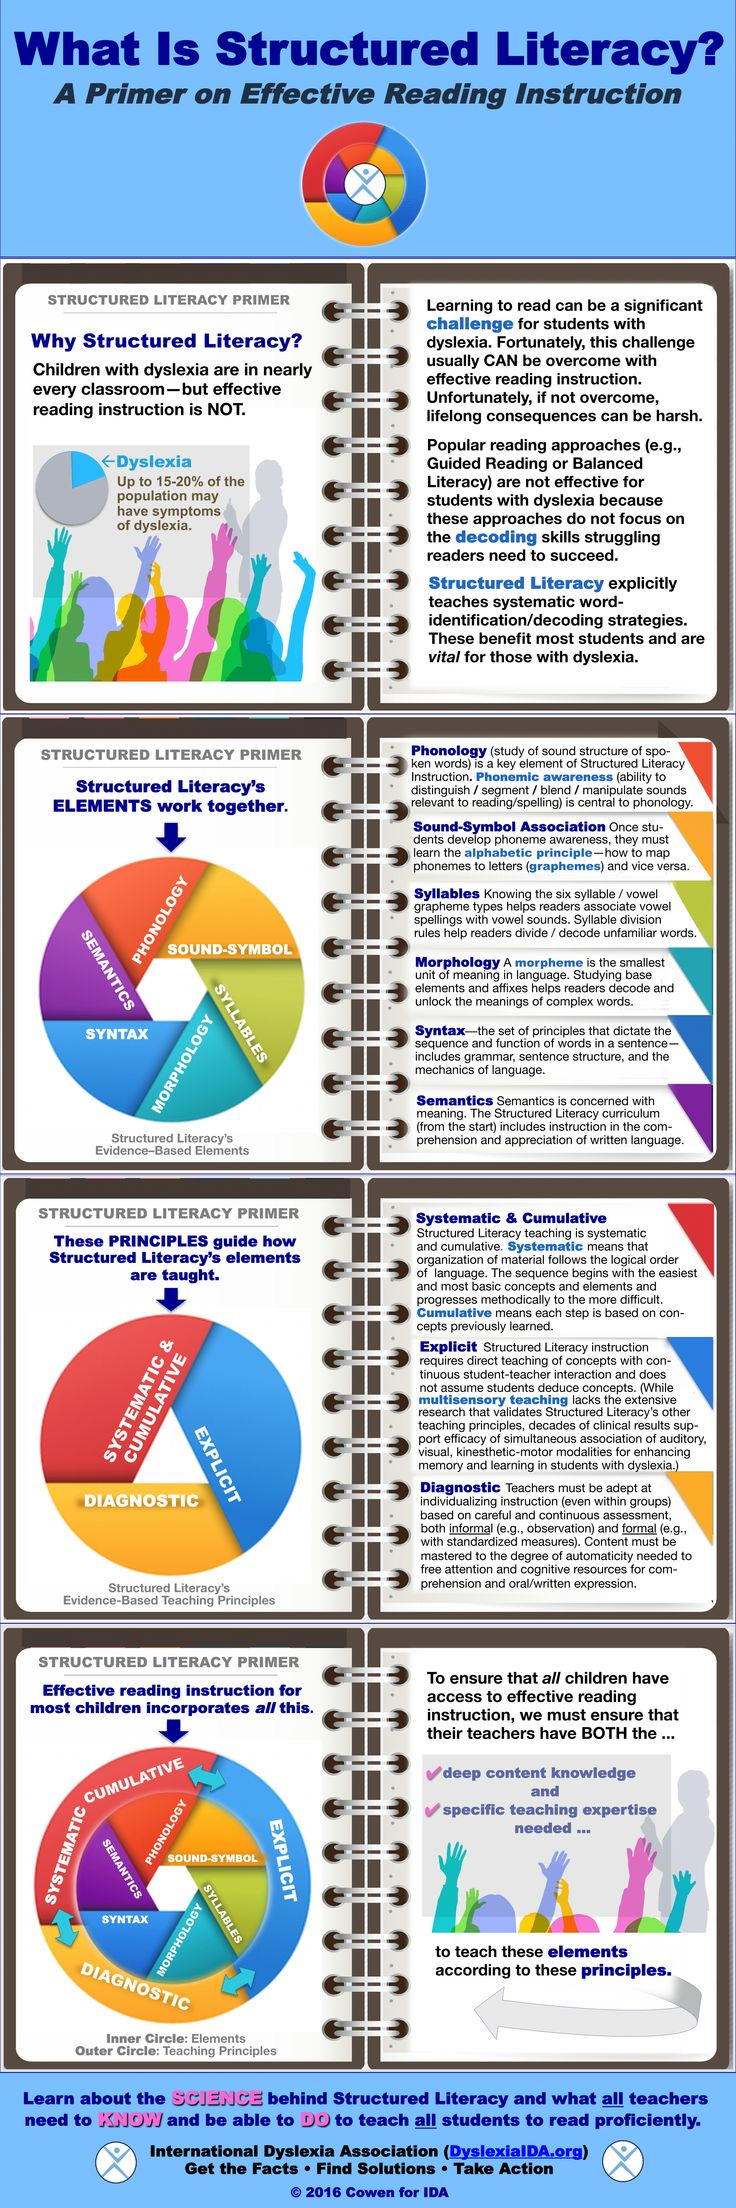 What Is Structured Literacy? – International Dyslexia Association